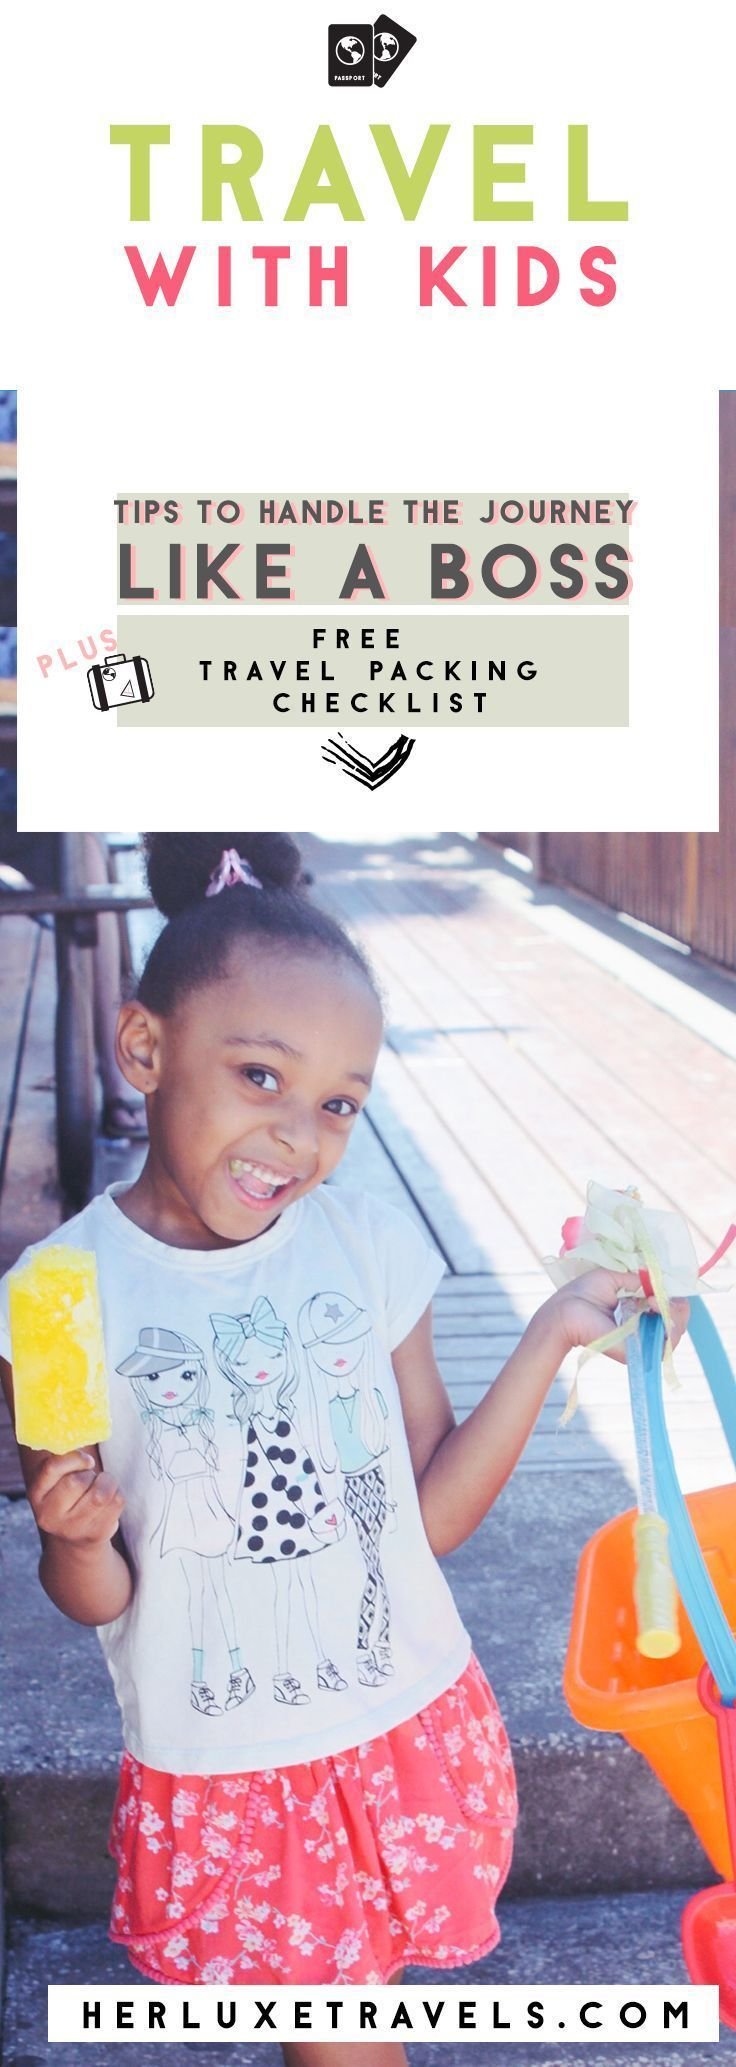 Bringing you My Absolute no nonsense TOP TIPS for traveling with kids , how to boss your way through the airport , PLUS a completely FREE packing list that ANYONE can use before their next vacay!  How to Pack like a Boss | Single Parent Travel Tips | Sing